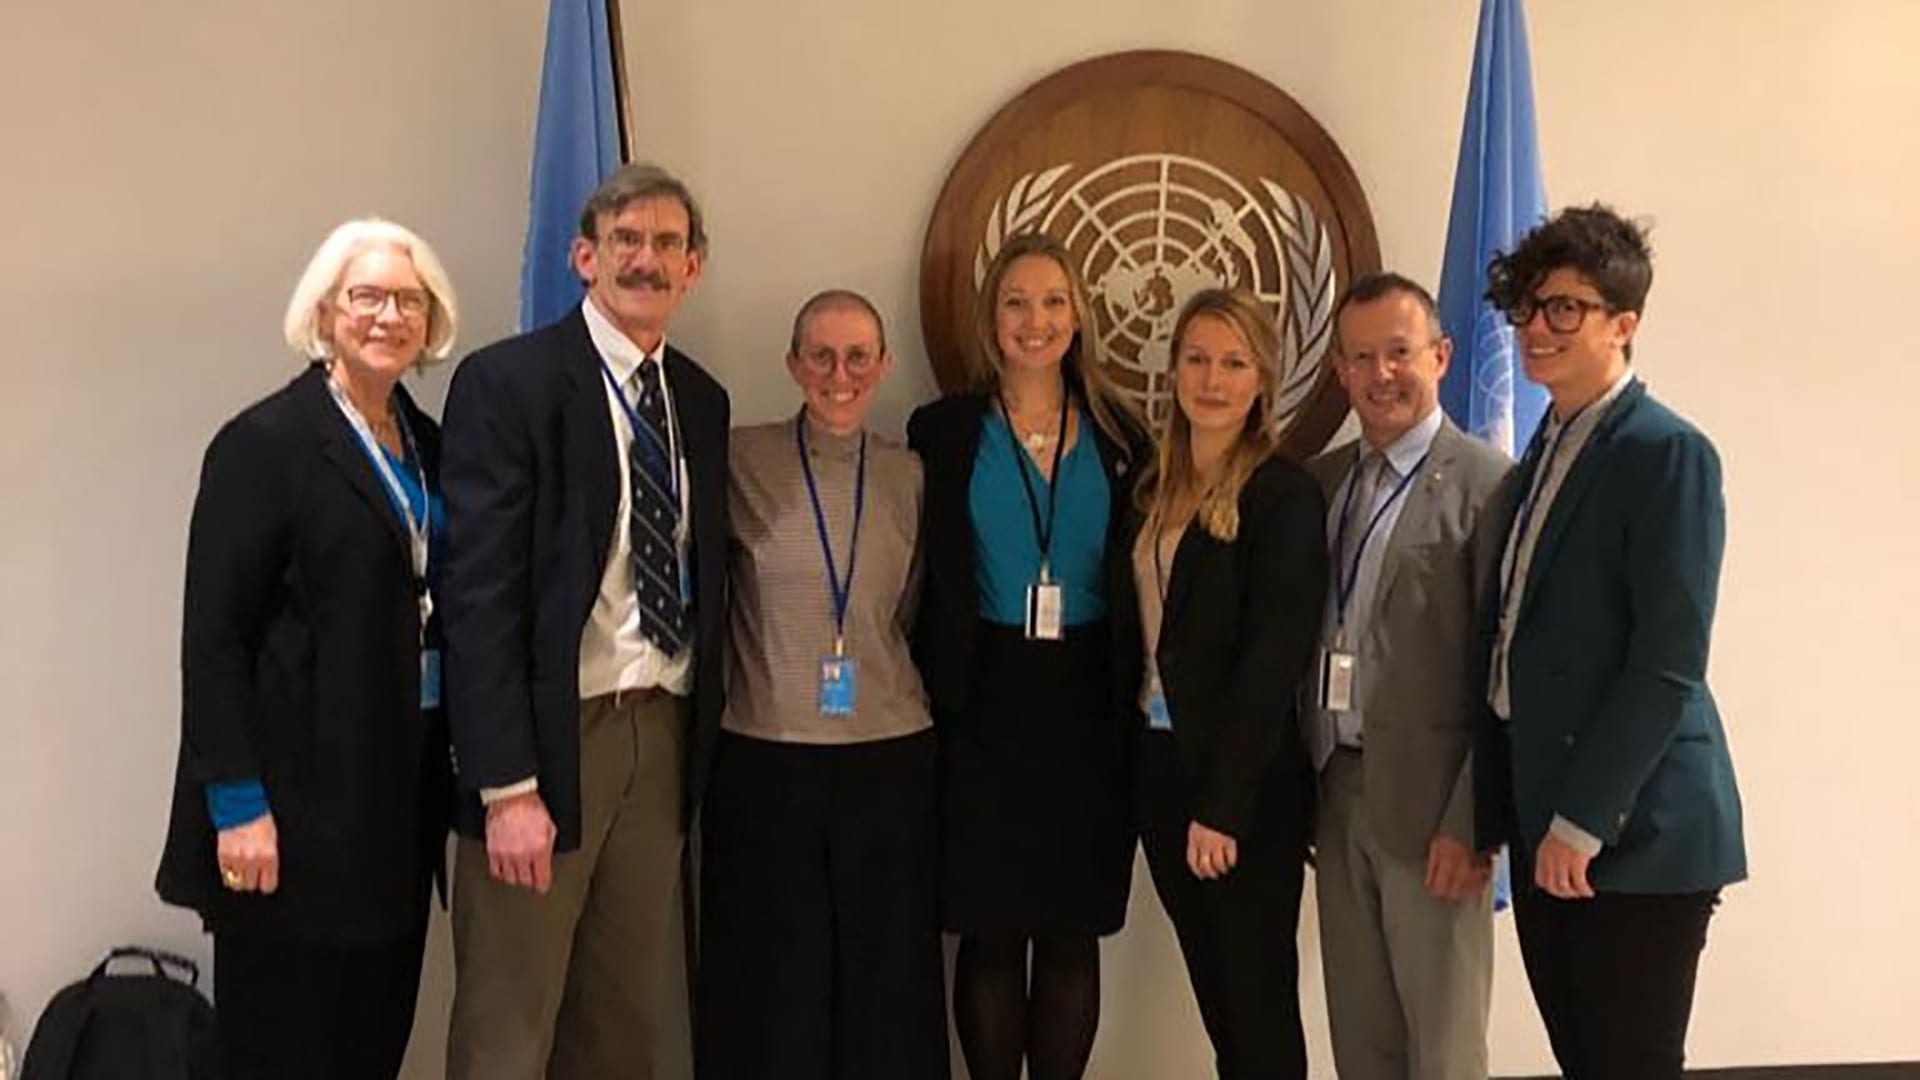 Attendees of the Biodiversity Beyond National Jurisdiction second session at the United Nations General Assembly in New York line up for a quick photo. (from left to right) Kristina Gjerde, Porter Hoagland, Aria Ritz Finkelstein, Harriet Harden-Davies, Jane Collins, Torsten Thiele, Muriel Rabone. (© Woods Hole Oceanographic Institution)